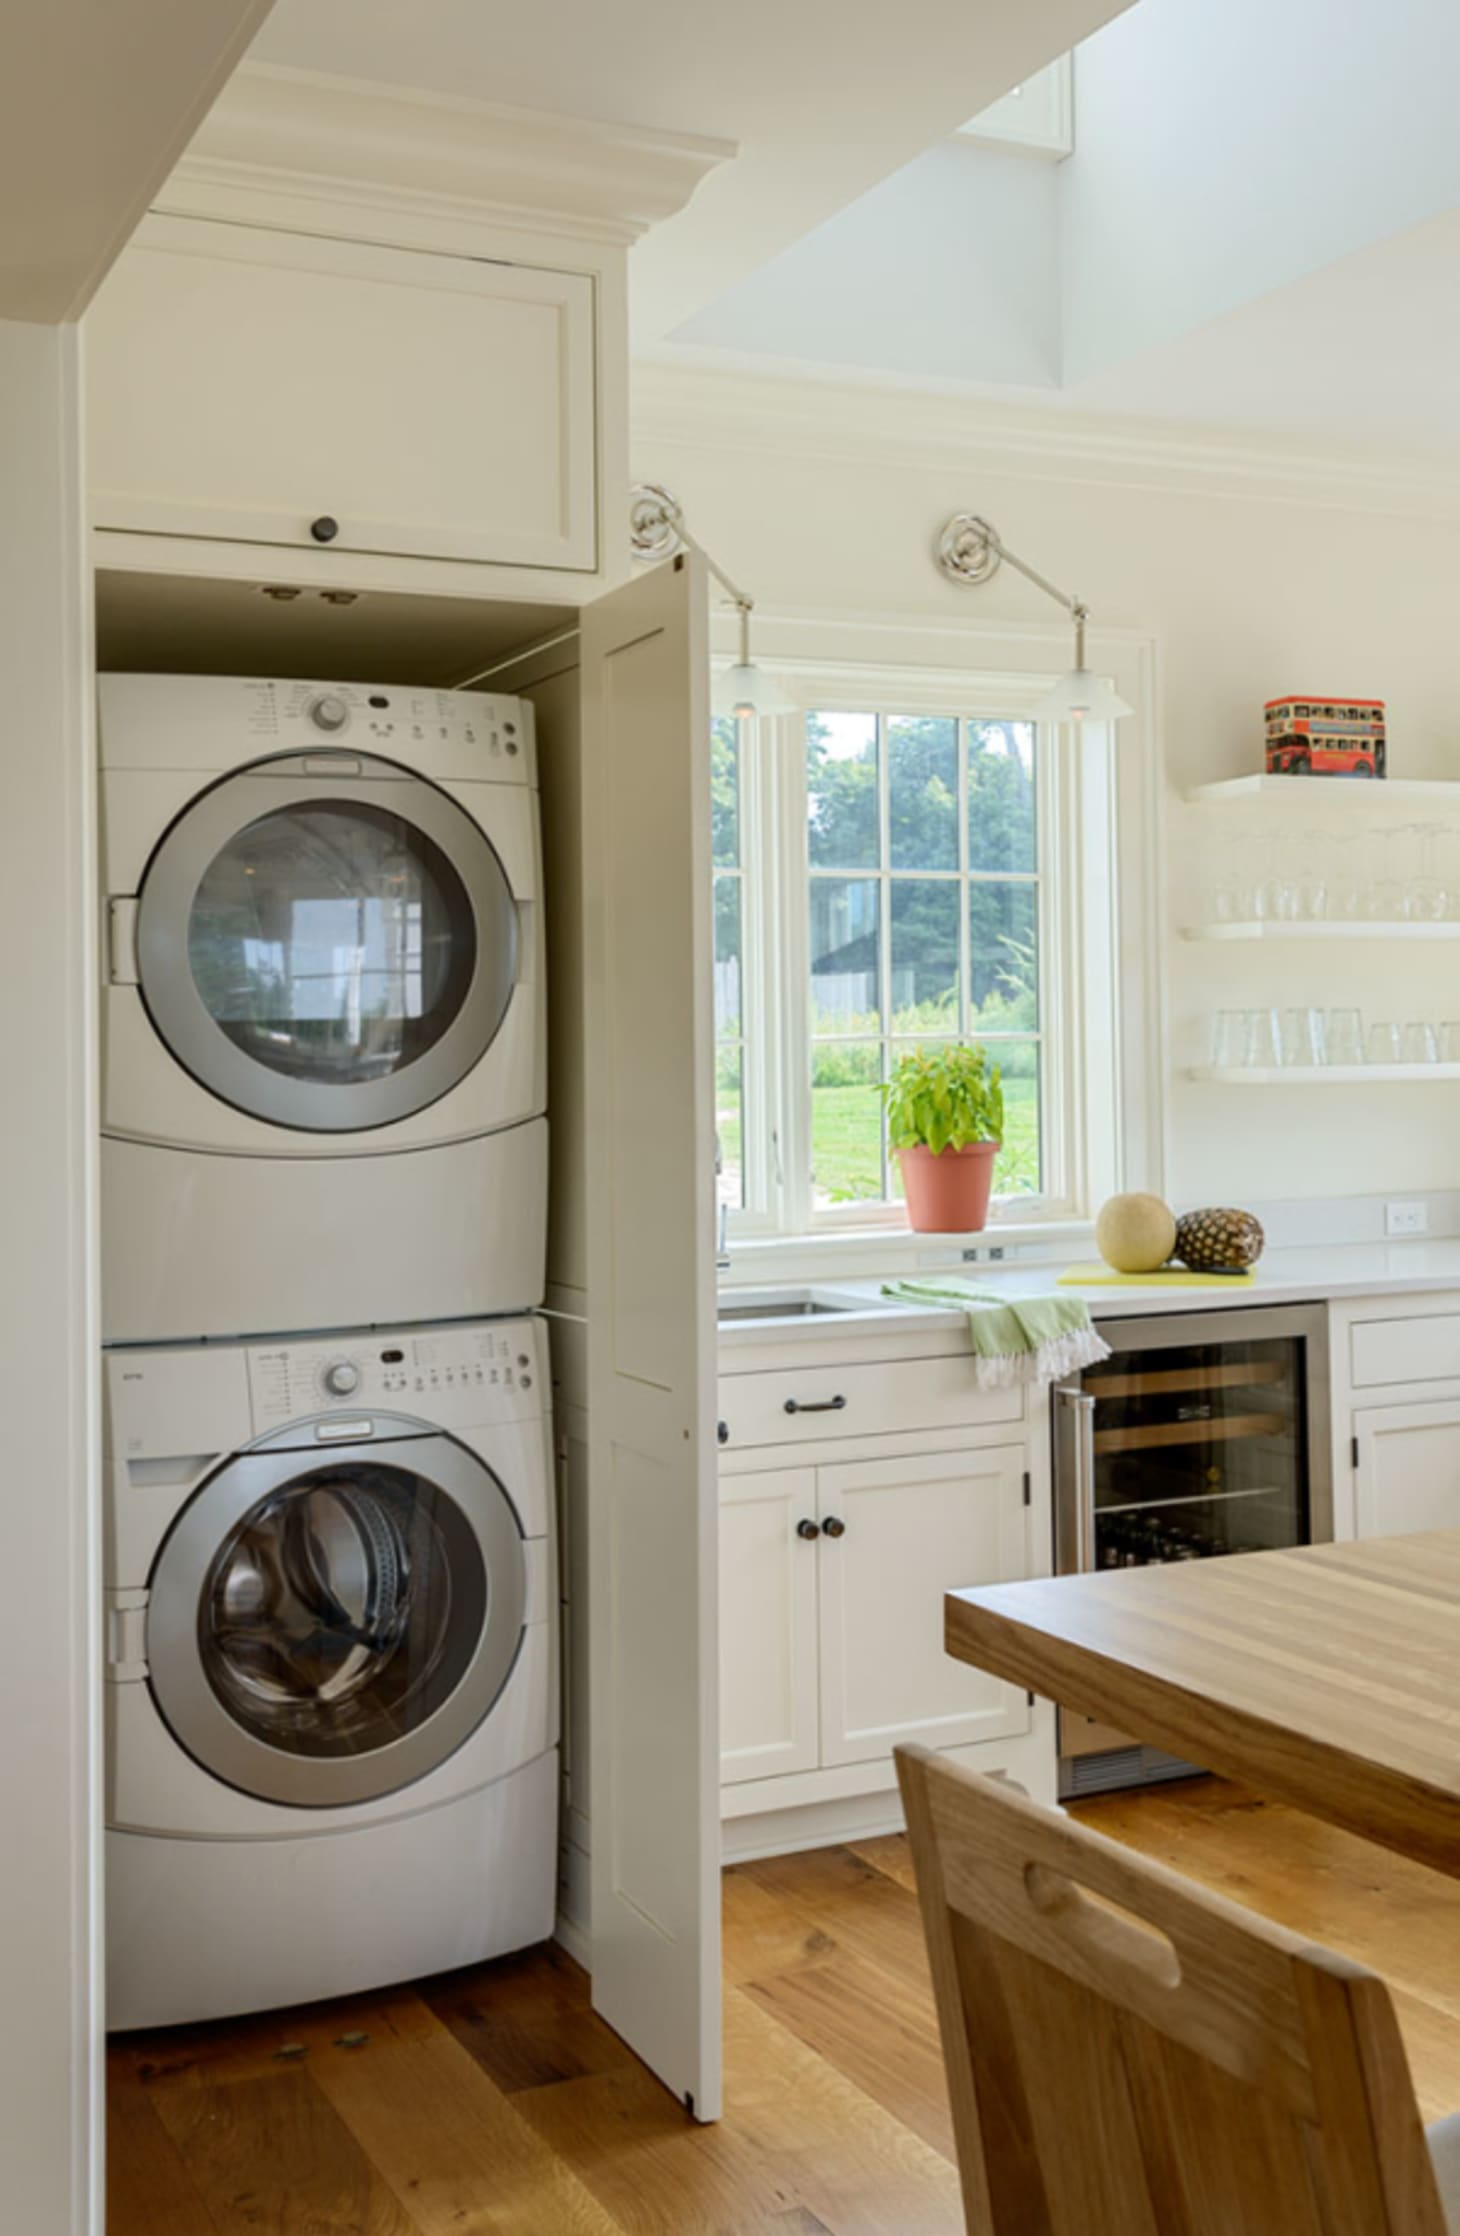 Small Laundry Room Remodeling Ideas | Apartment Therapy on Small Space Small Bathroom Ideas With Washing Machine id=15614